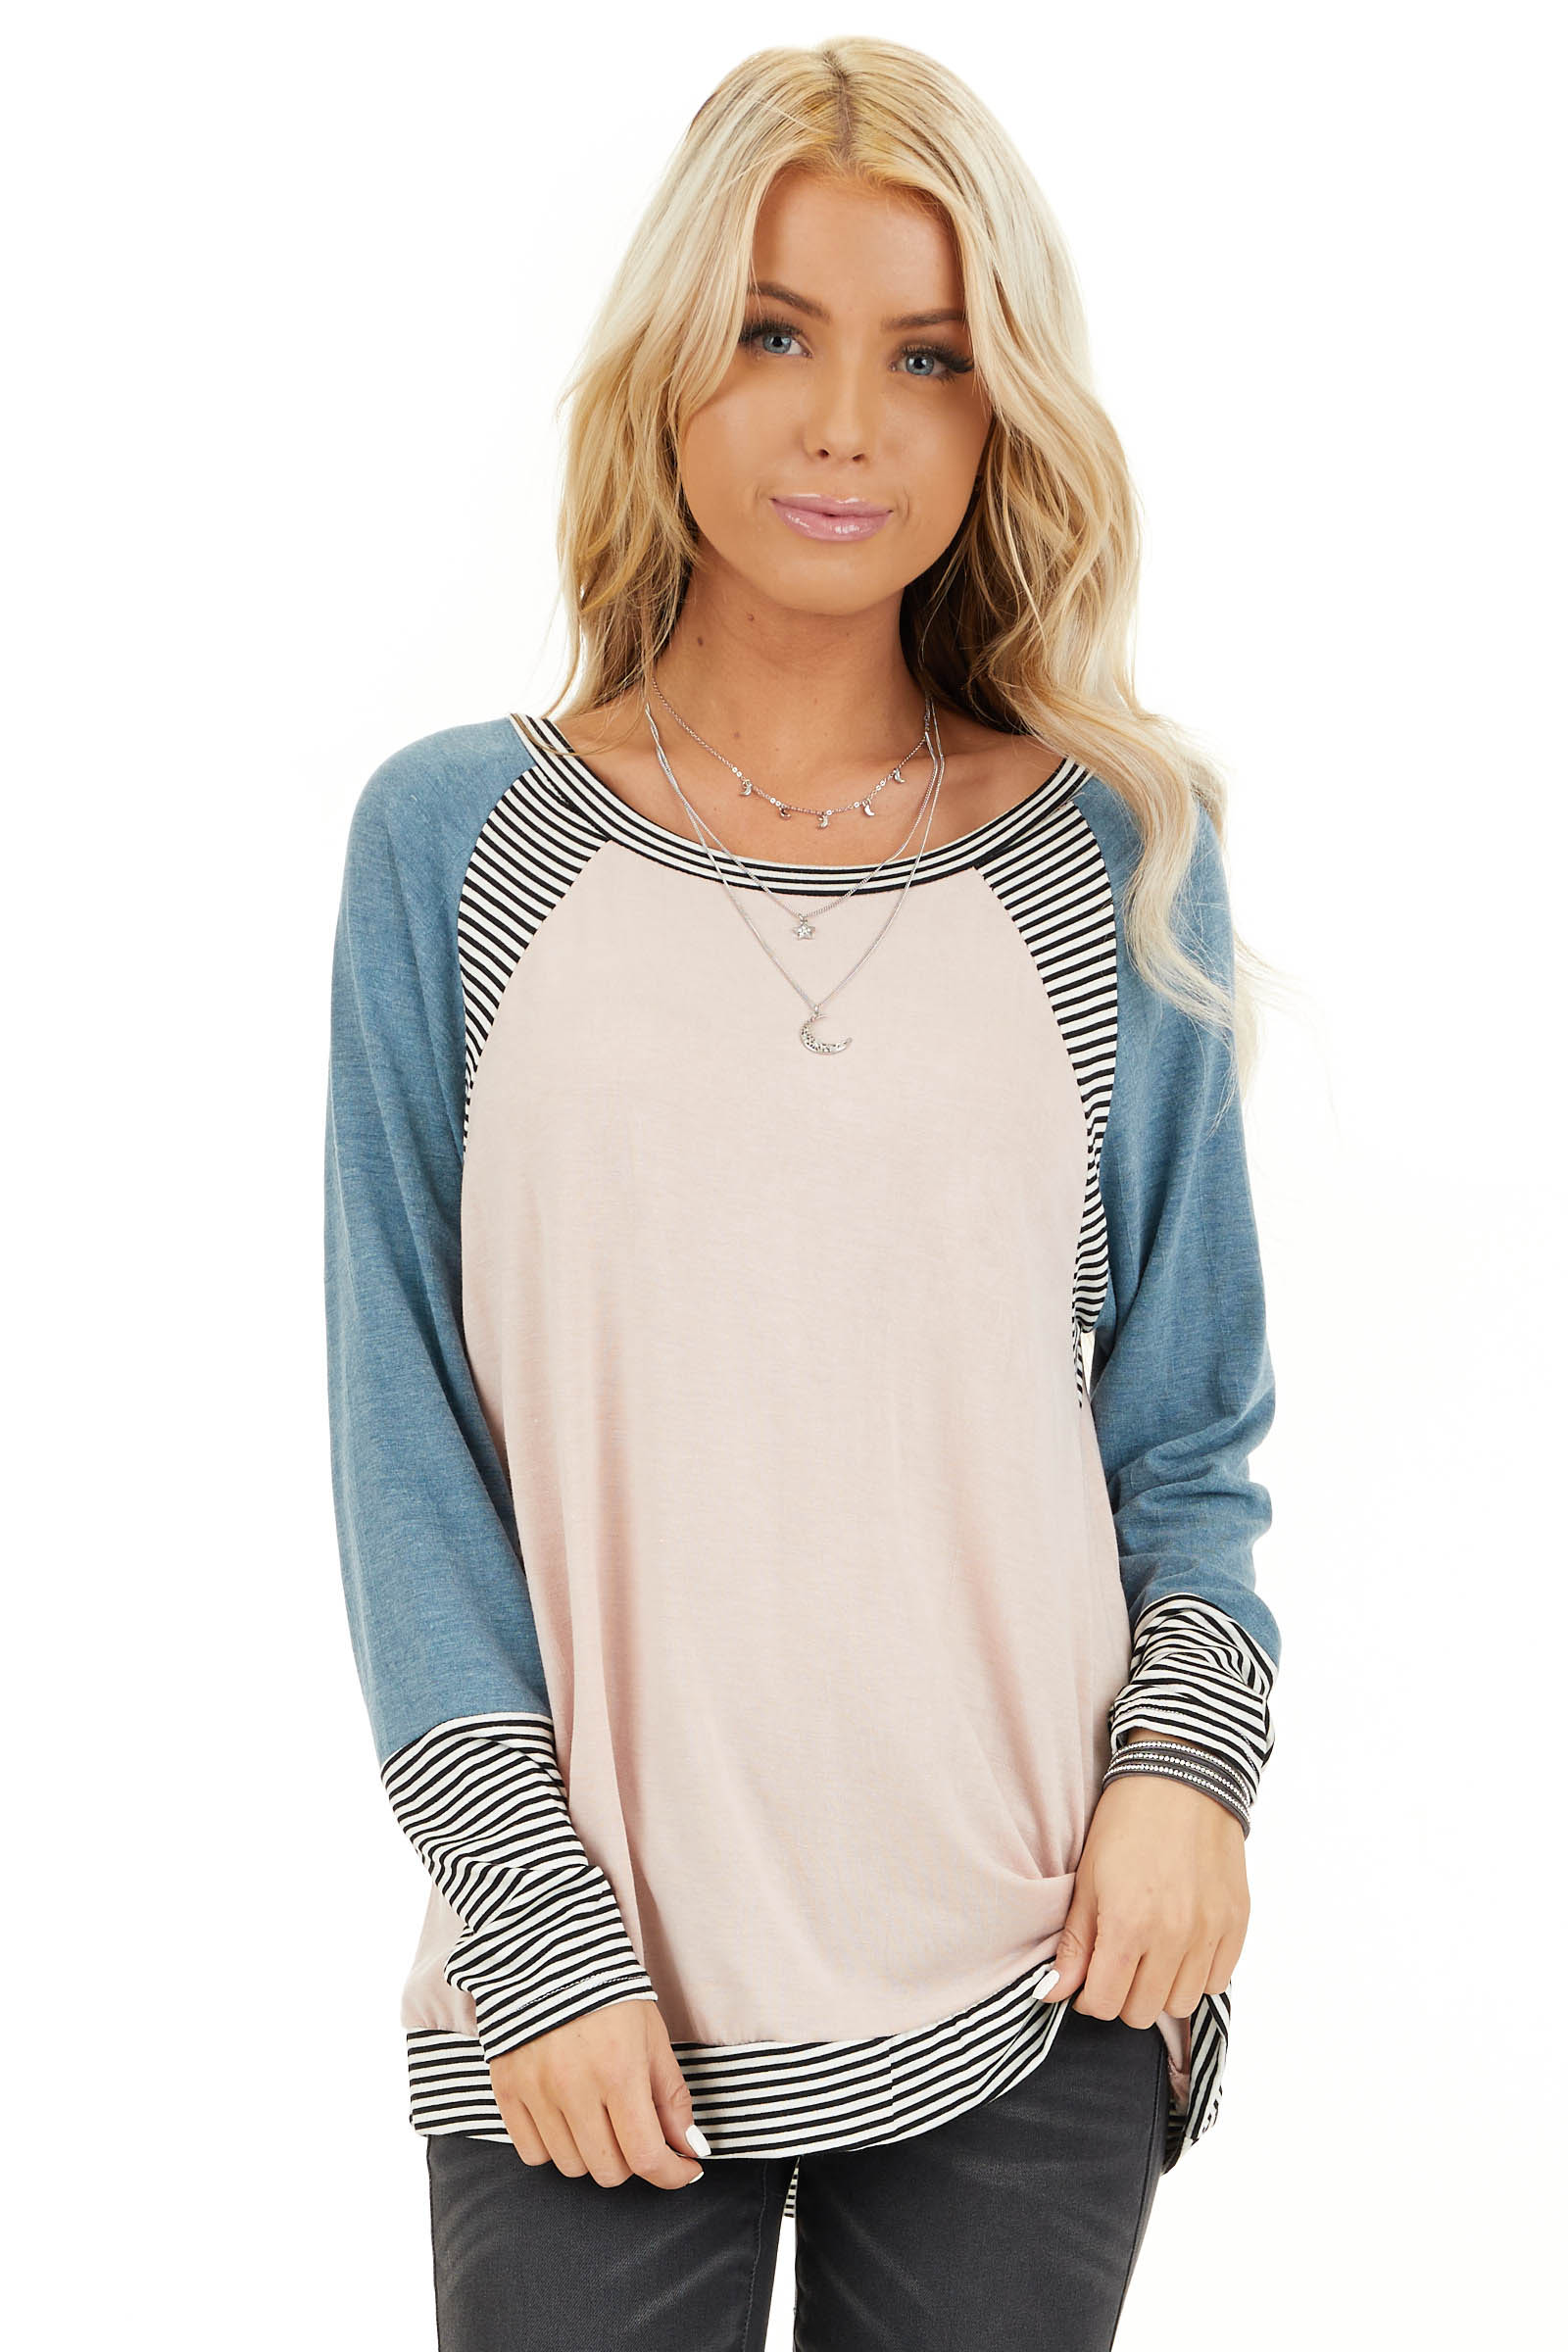 Blush and Teal Long Sleeve Top with Striped Contrast front close up